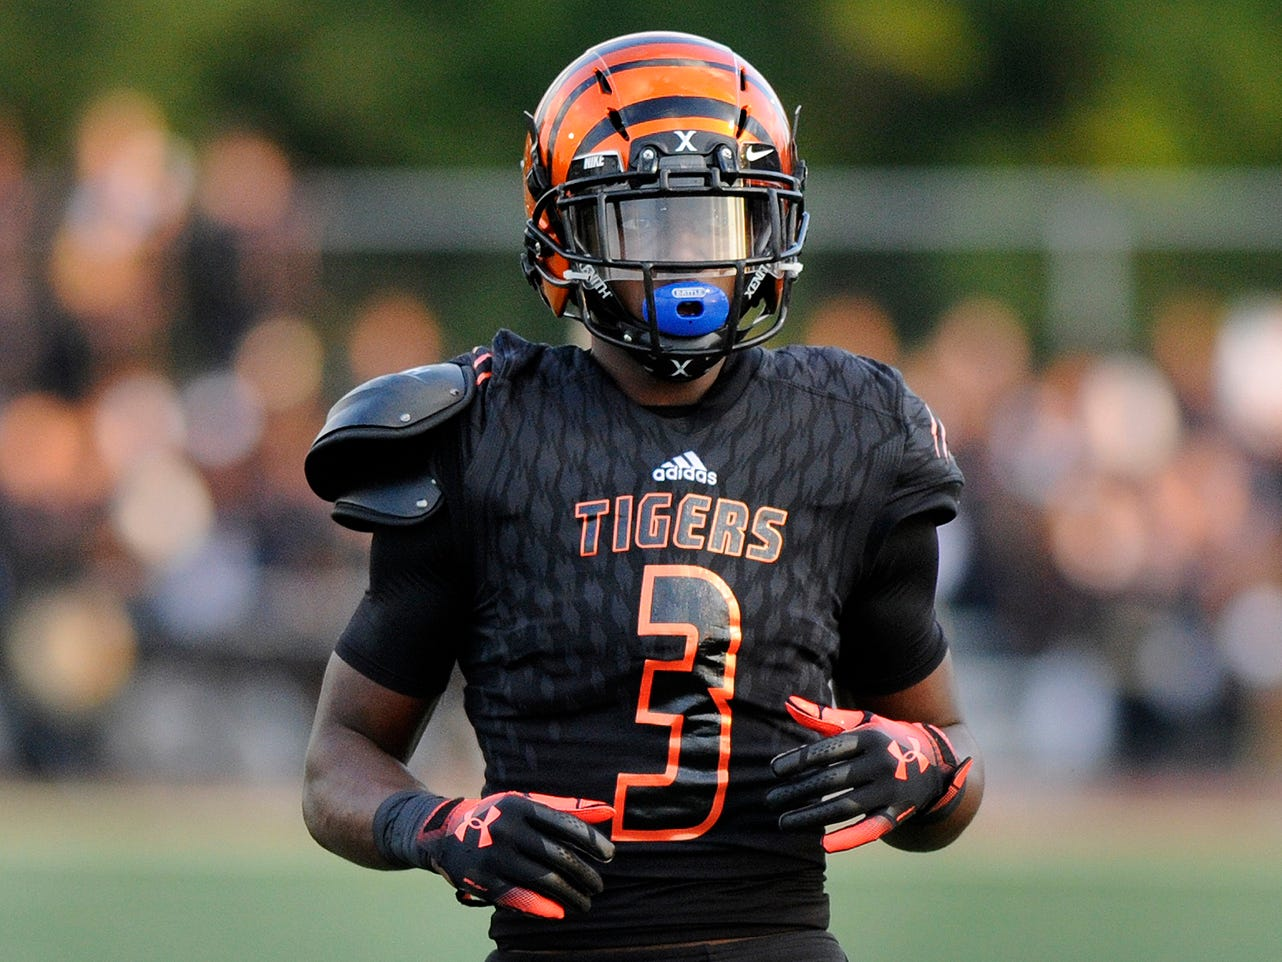 Go through the gallery to view The Detroit News top 15 Blue Chip high school football prospects, and where they're headed for college, The list includes Belleville's Julian Barnett, a Michigan State commitment. Player breakdowns by David Goricki of The Detroit News.